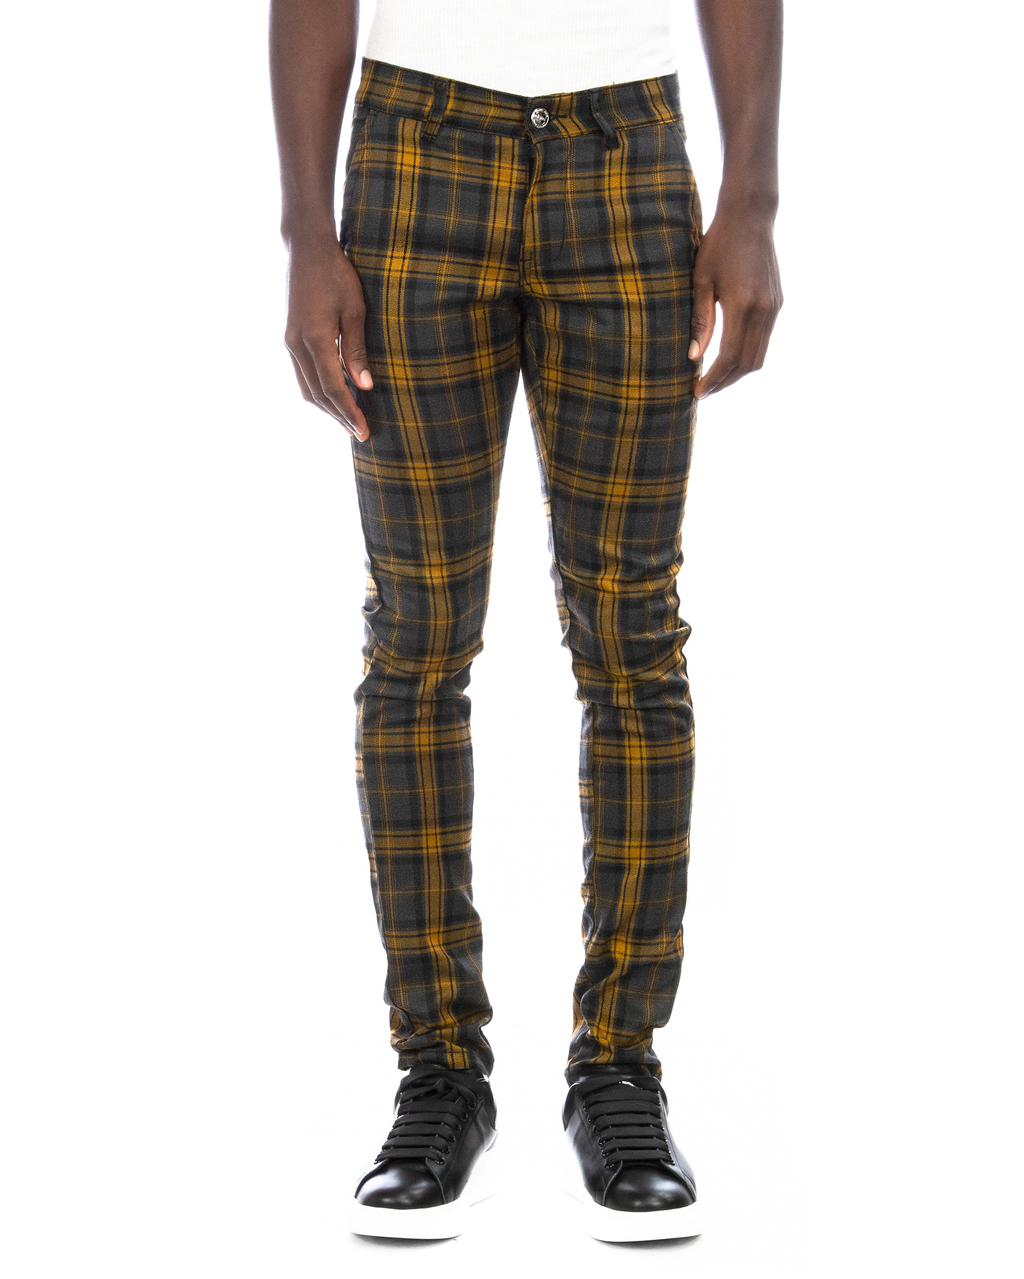 Trinity Kays Kulture Brixton Plaid Pants in Charcoal - Yellow